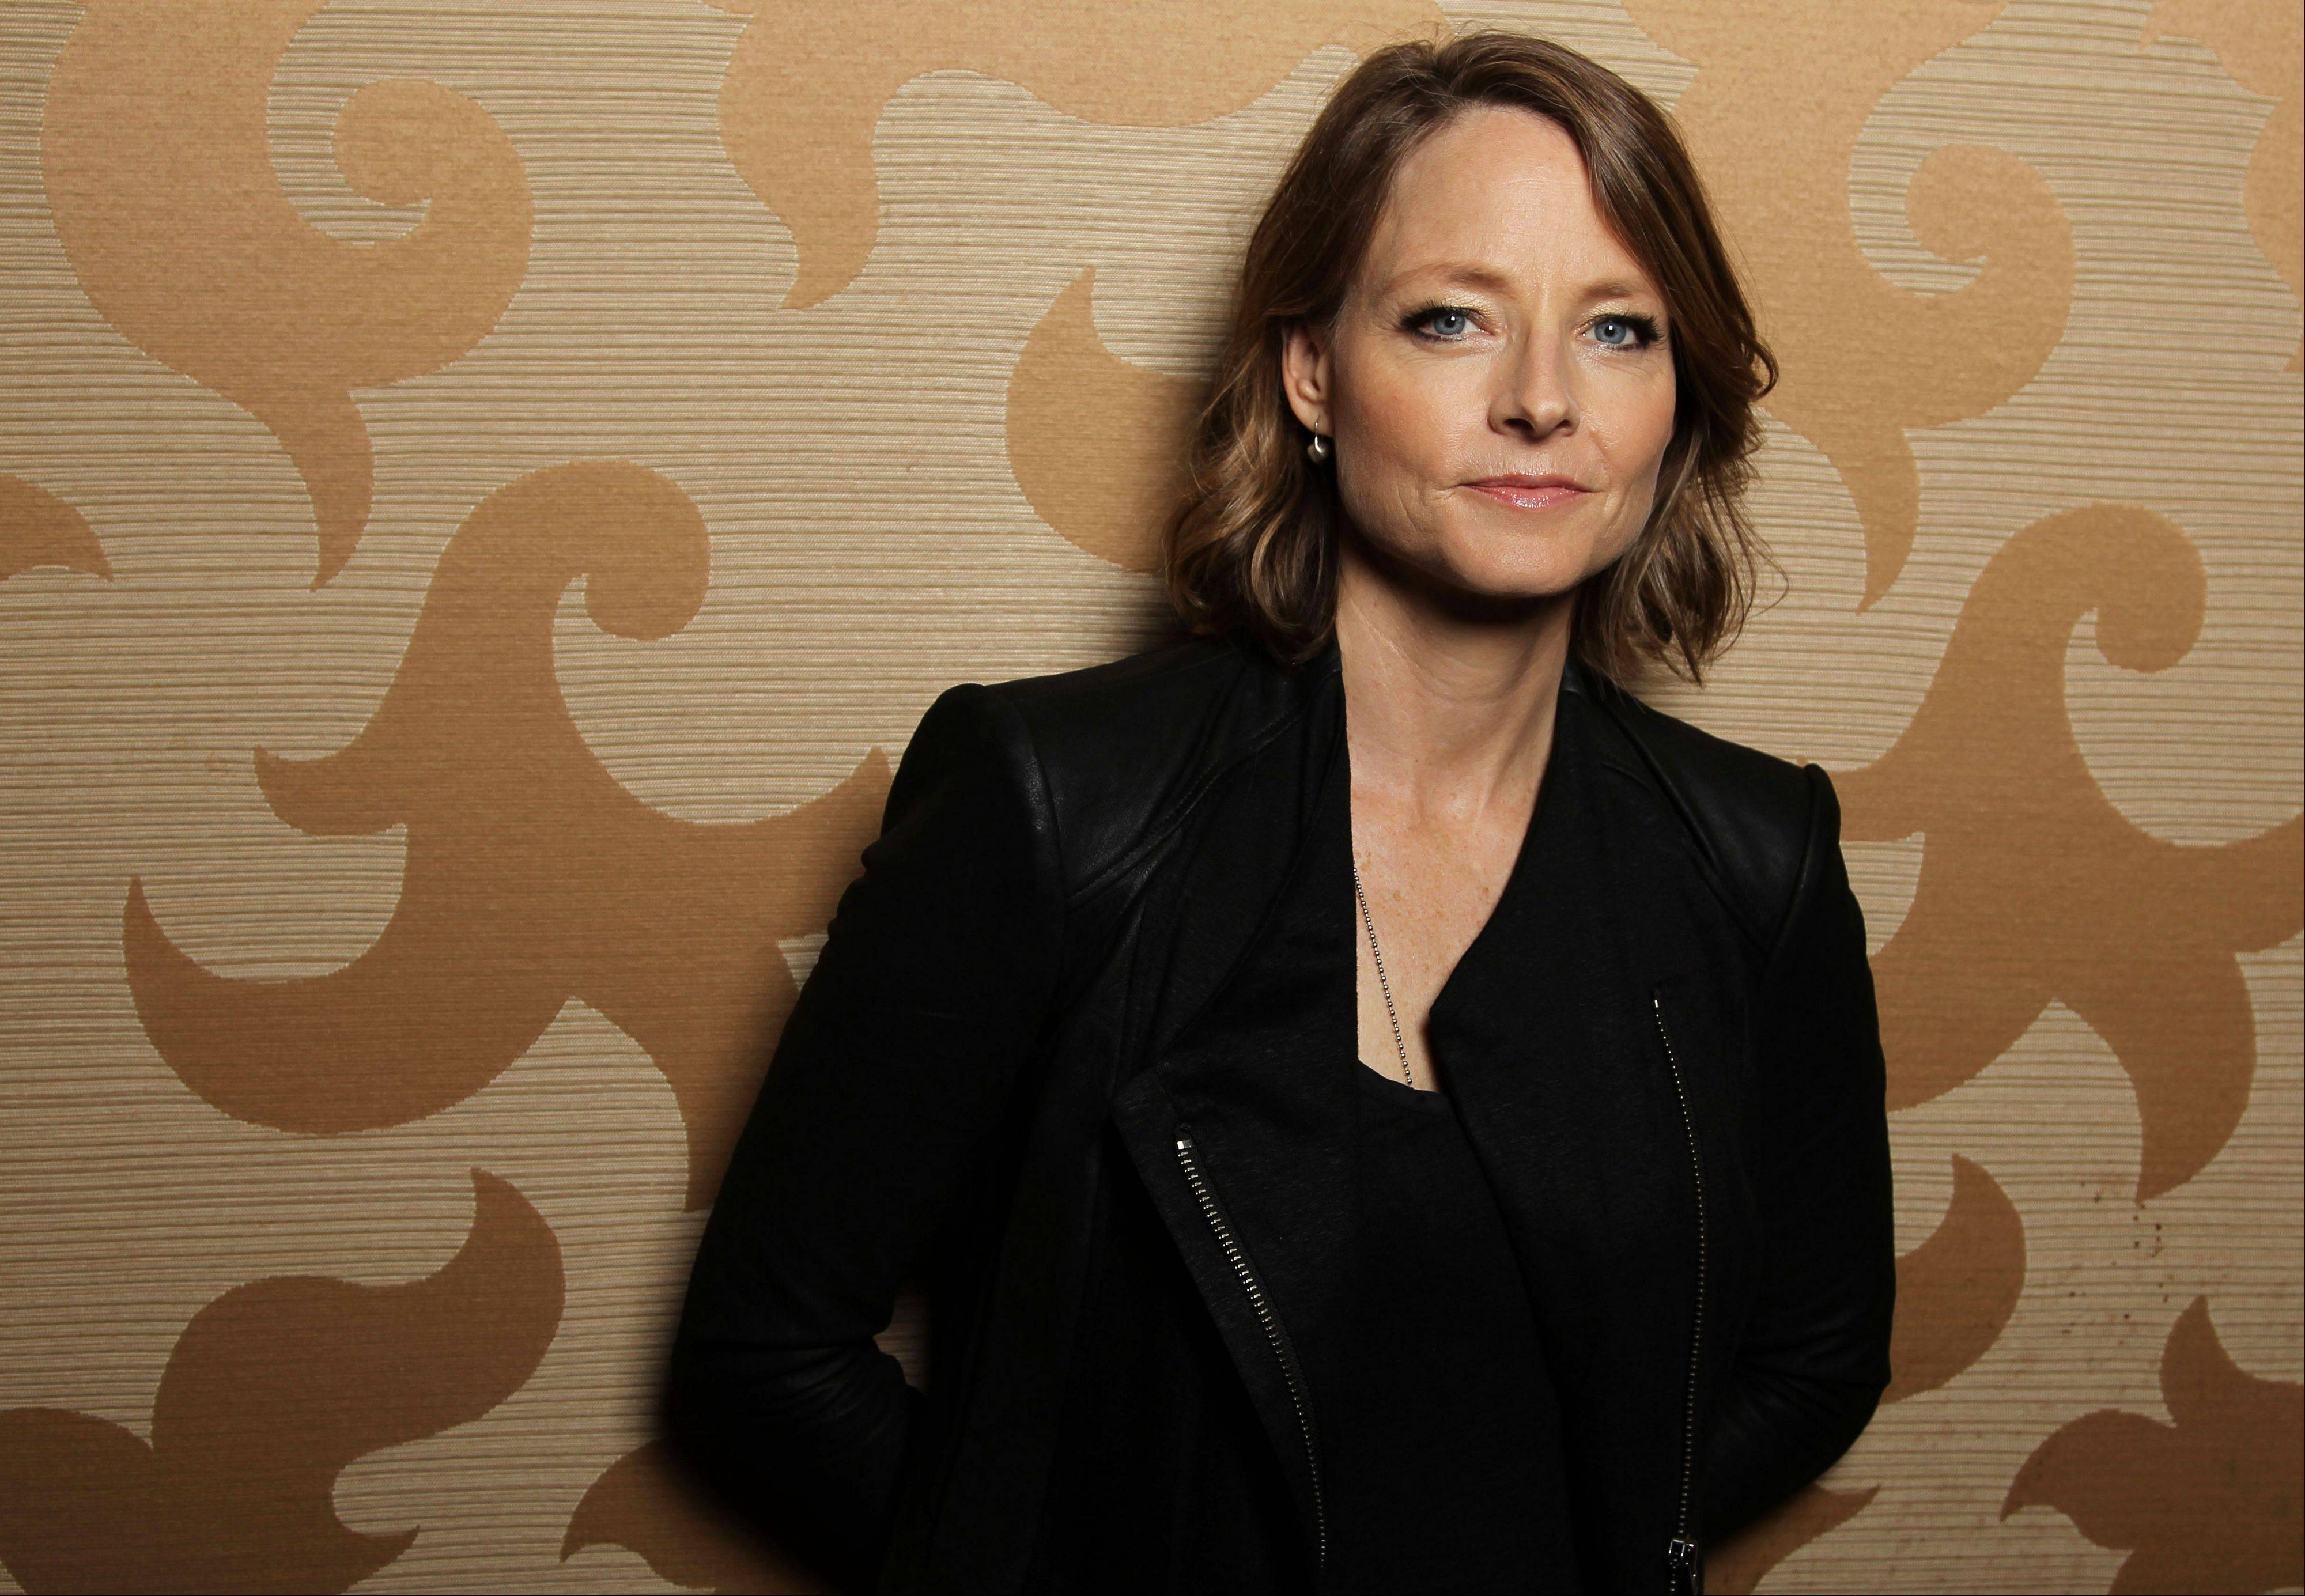 Actress, Jodie Foster is famous for the strong screen persona and versatile talent she�s displayed over her 47 years as an actress.